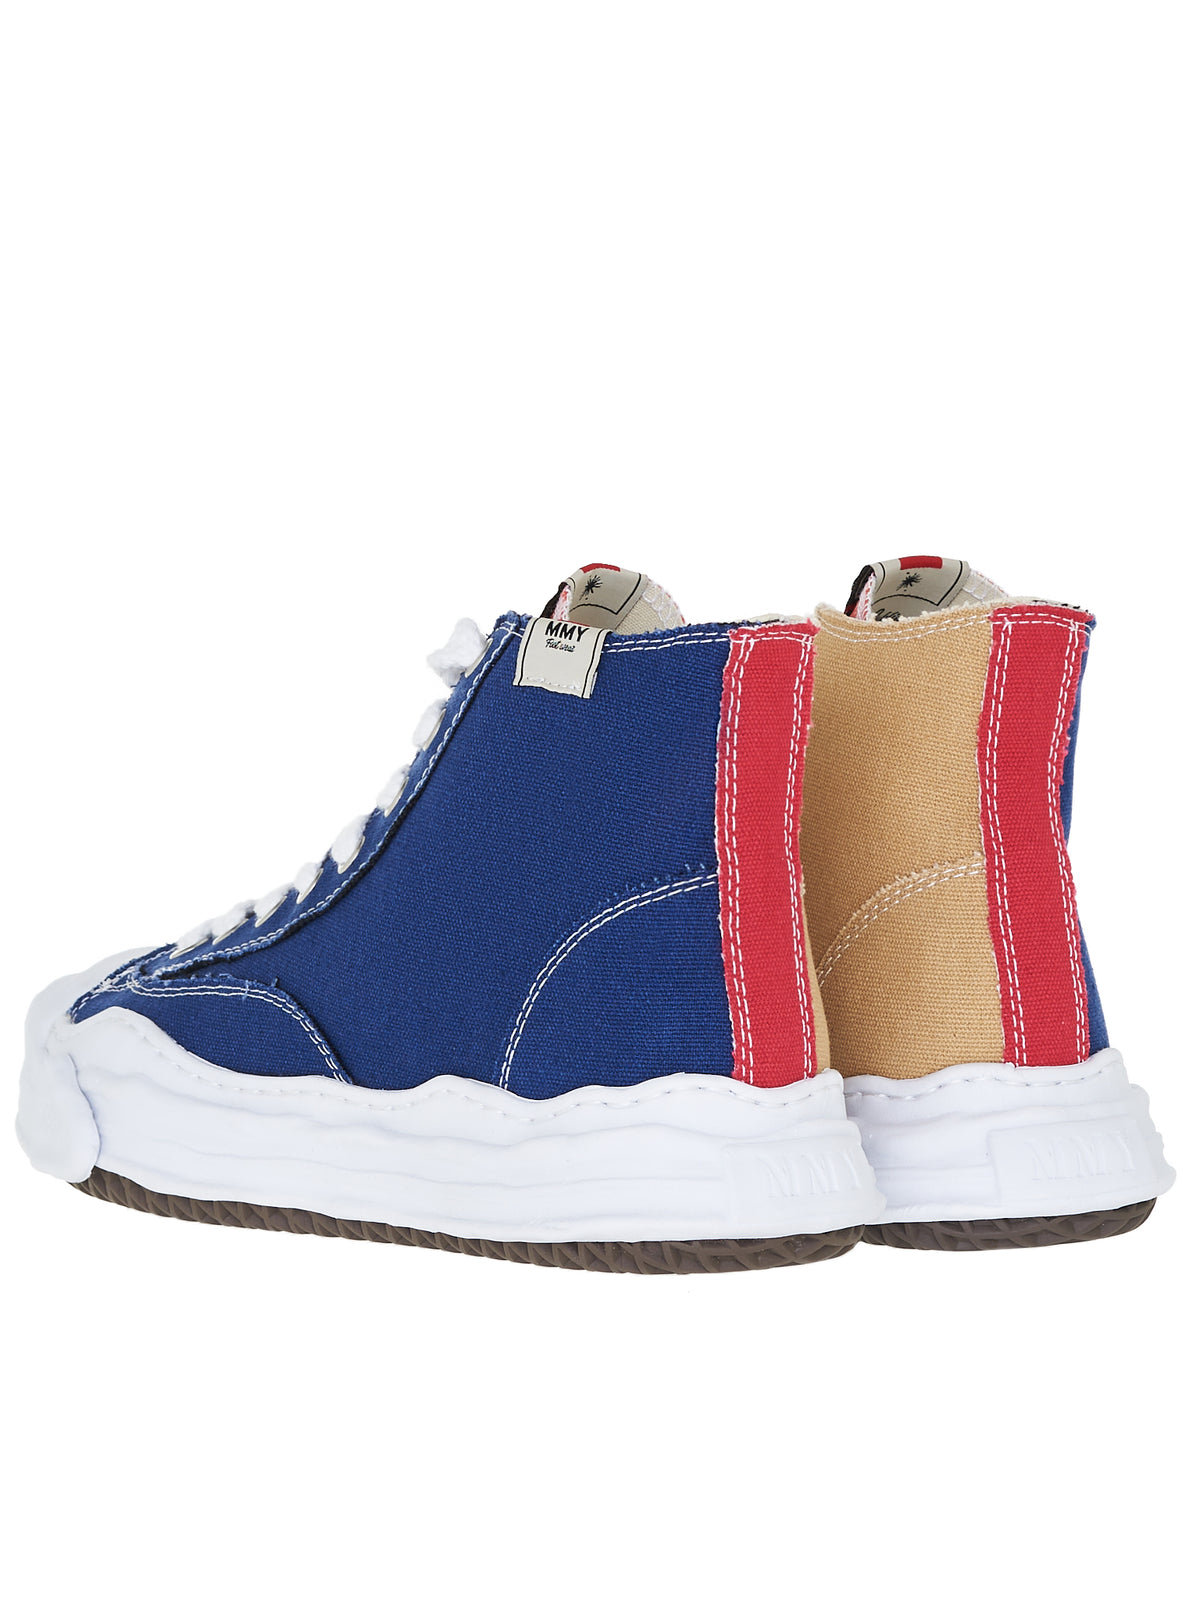 Original Sole Hi-Top Sneakers (A05FW701-NAVY-BEIGE)